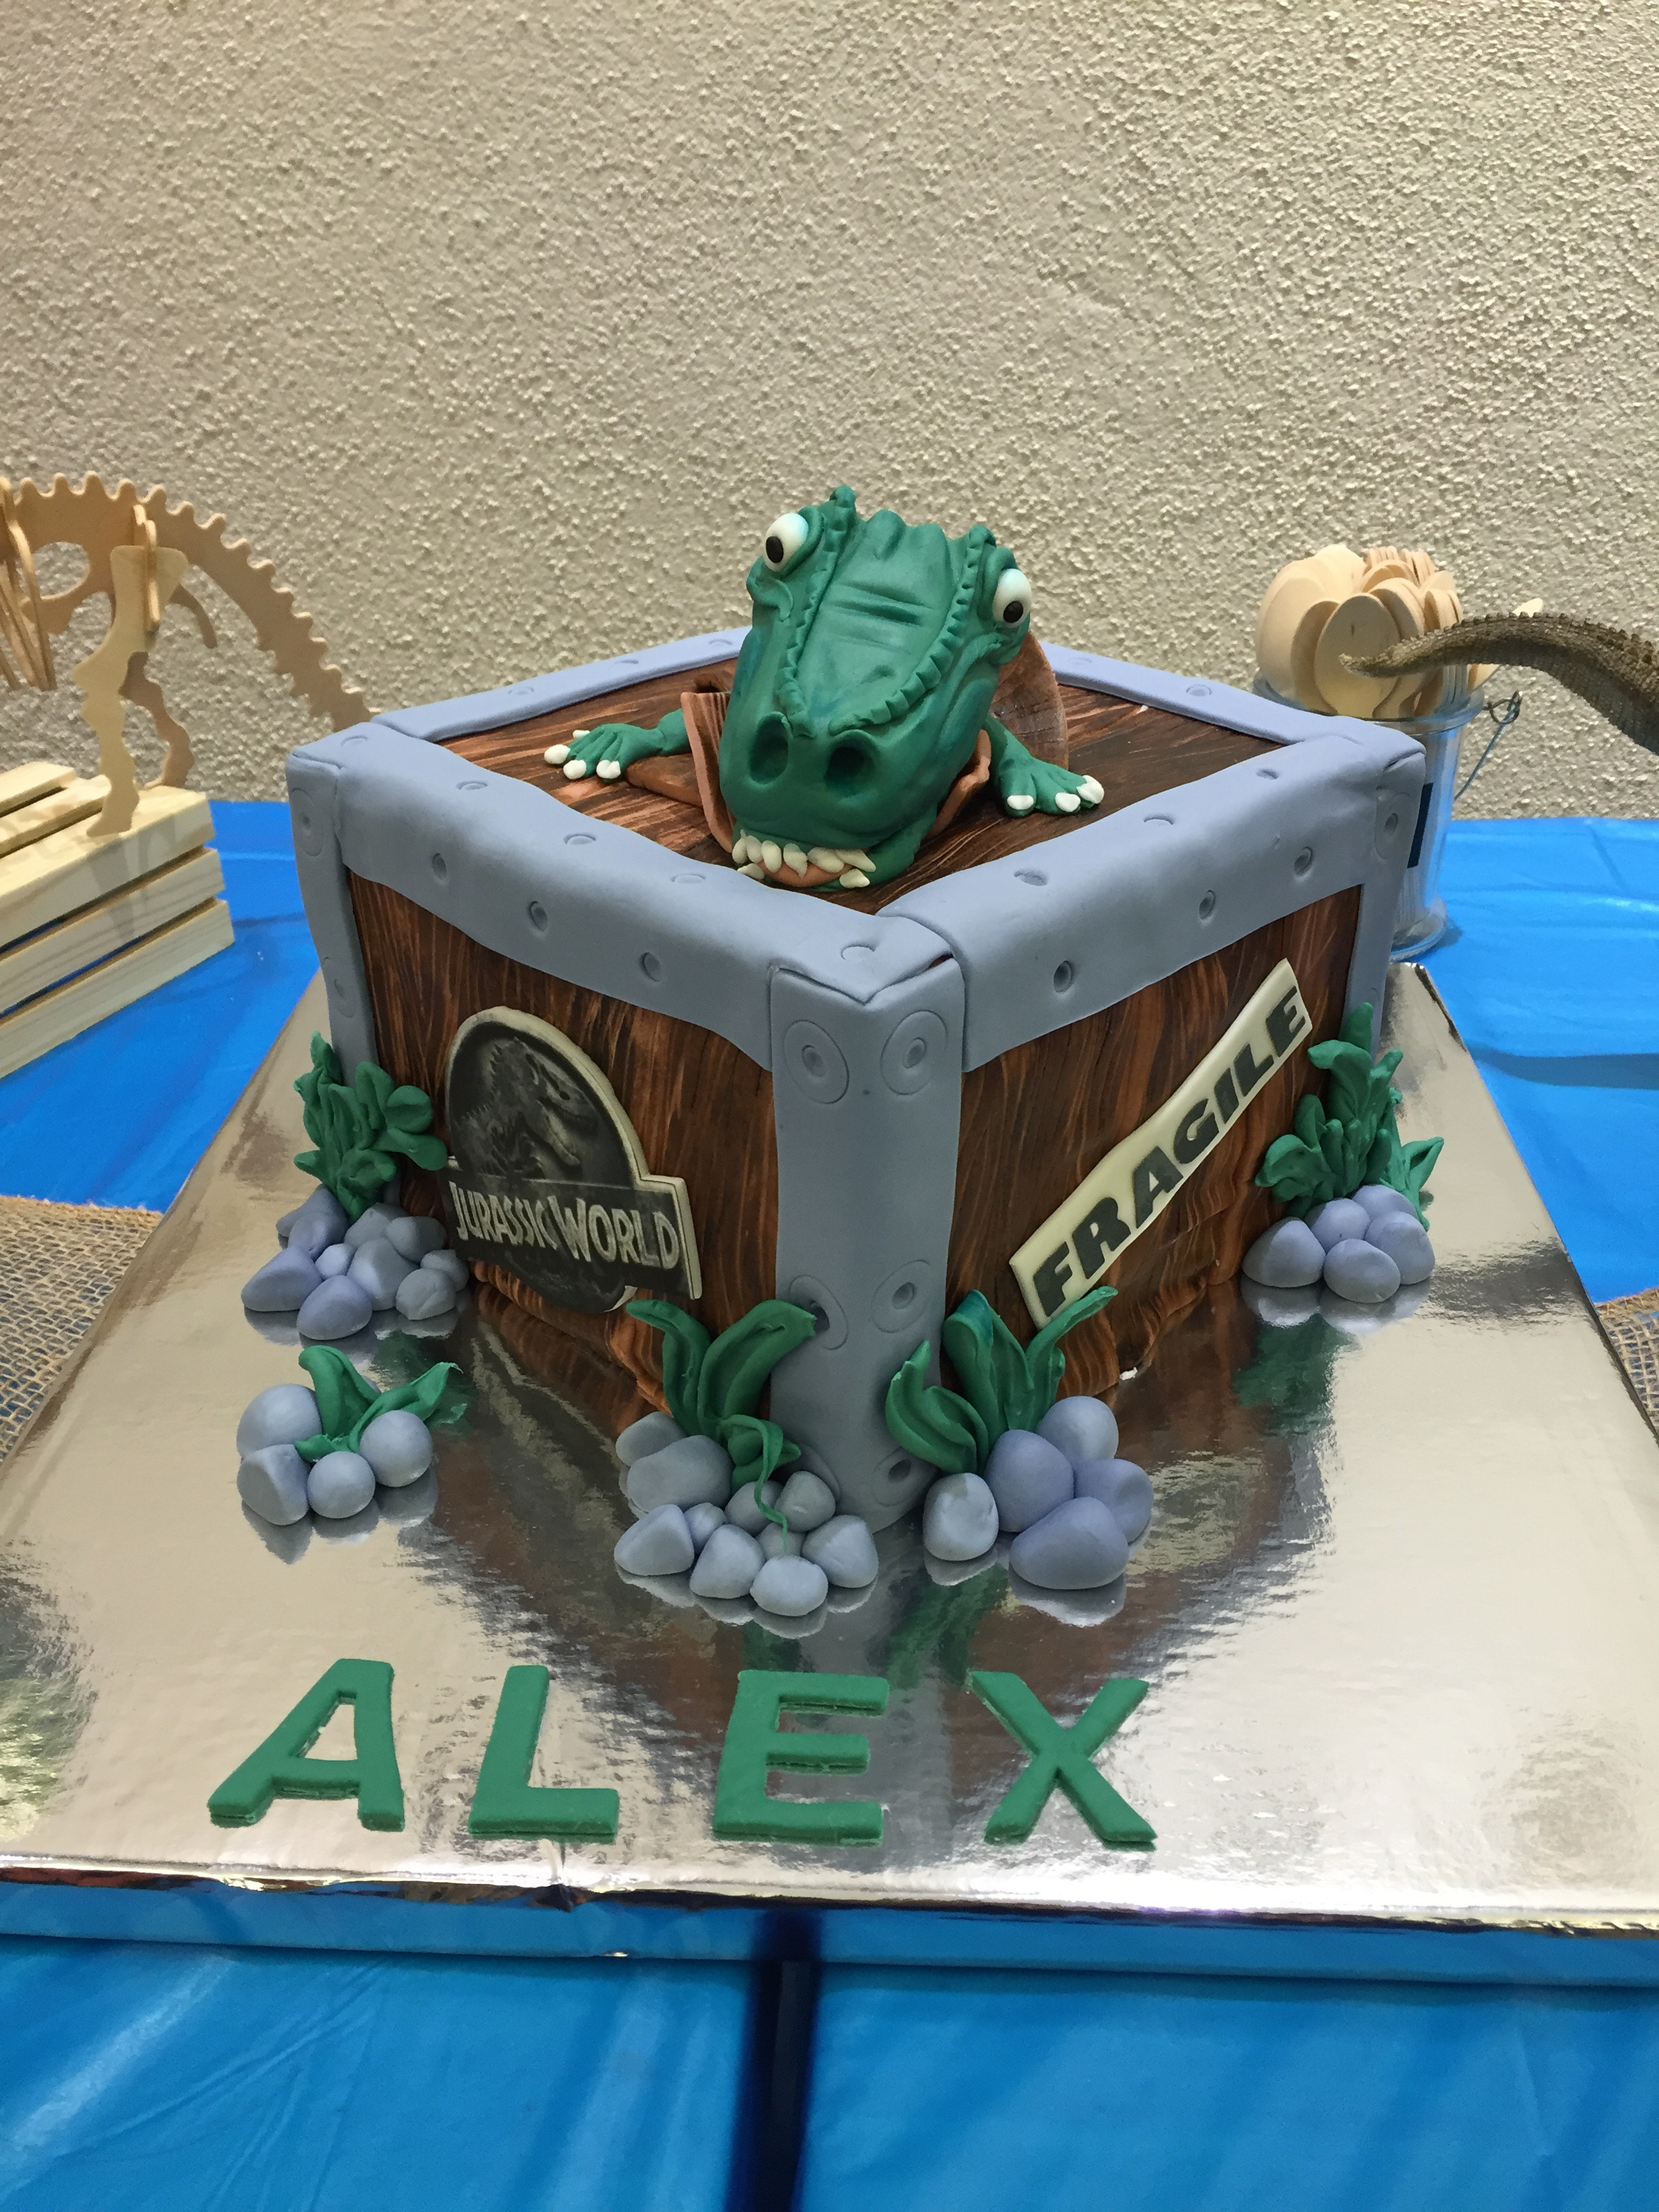 Best ideas about Jurassic World Birthday Cake . Save or Pin Amazing Cakes Top picks of Party Smarty 2015 Now.